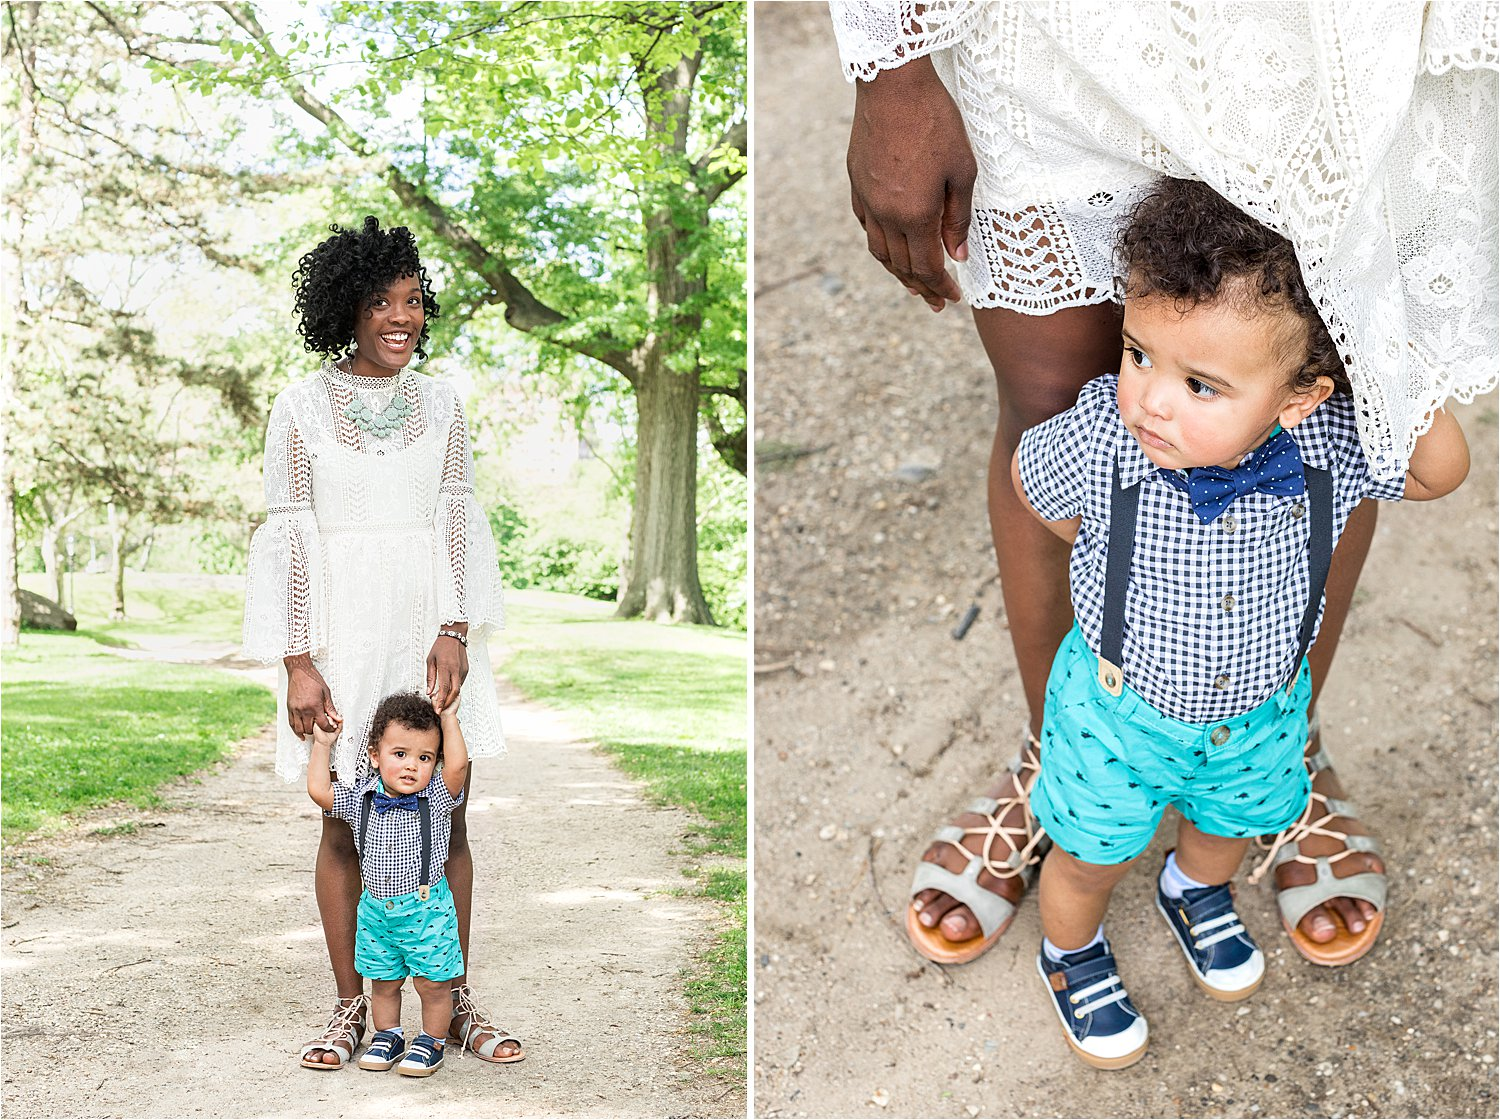 Central_Park_Family_Photographer_UWS_NYC_Nicole_Hawkins_Photography_First_Birthday_1.jpg